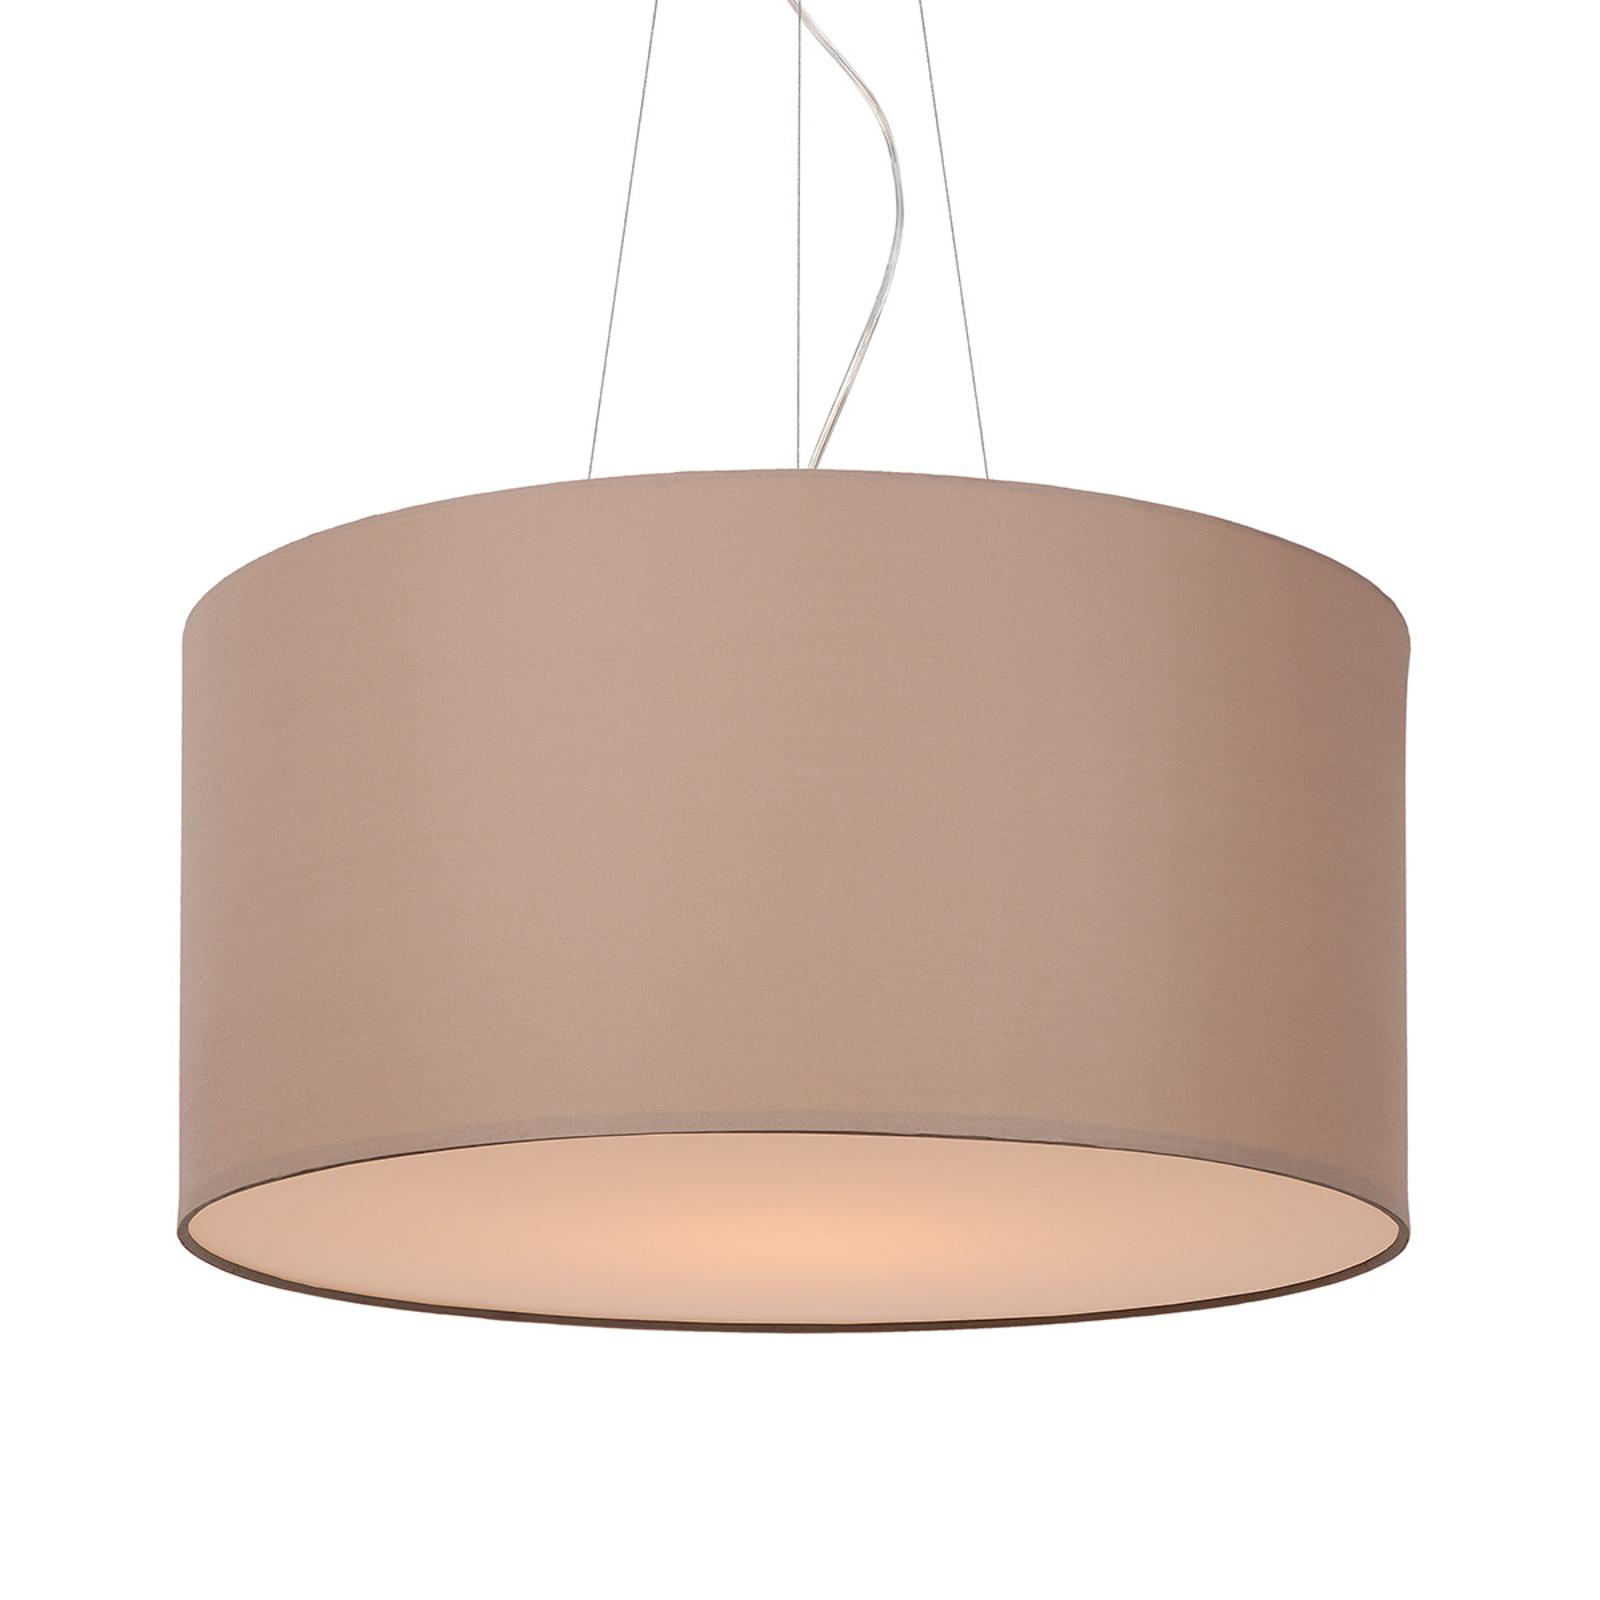 Suspension universelle CORAL 40 cm taupe